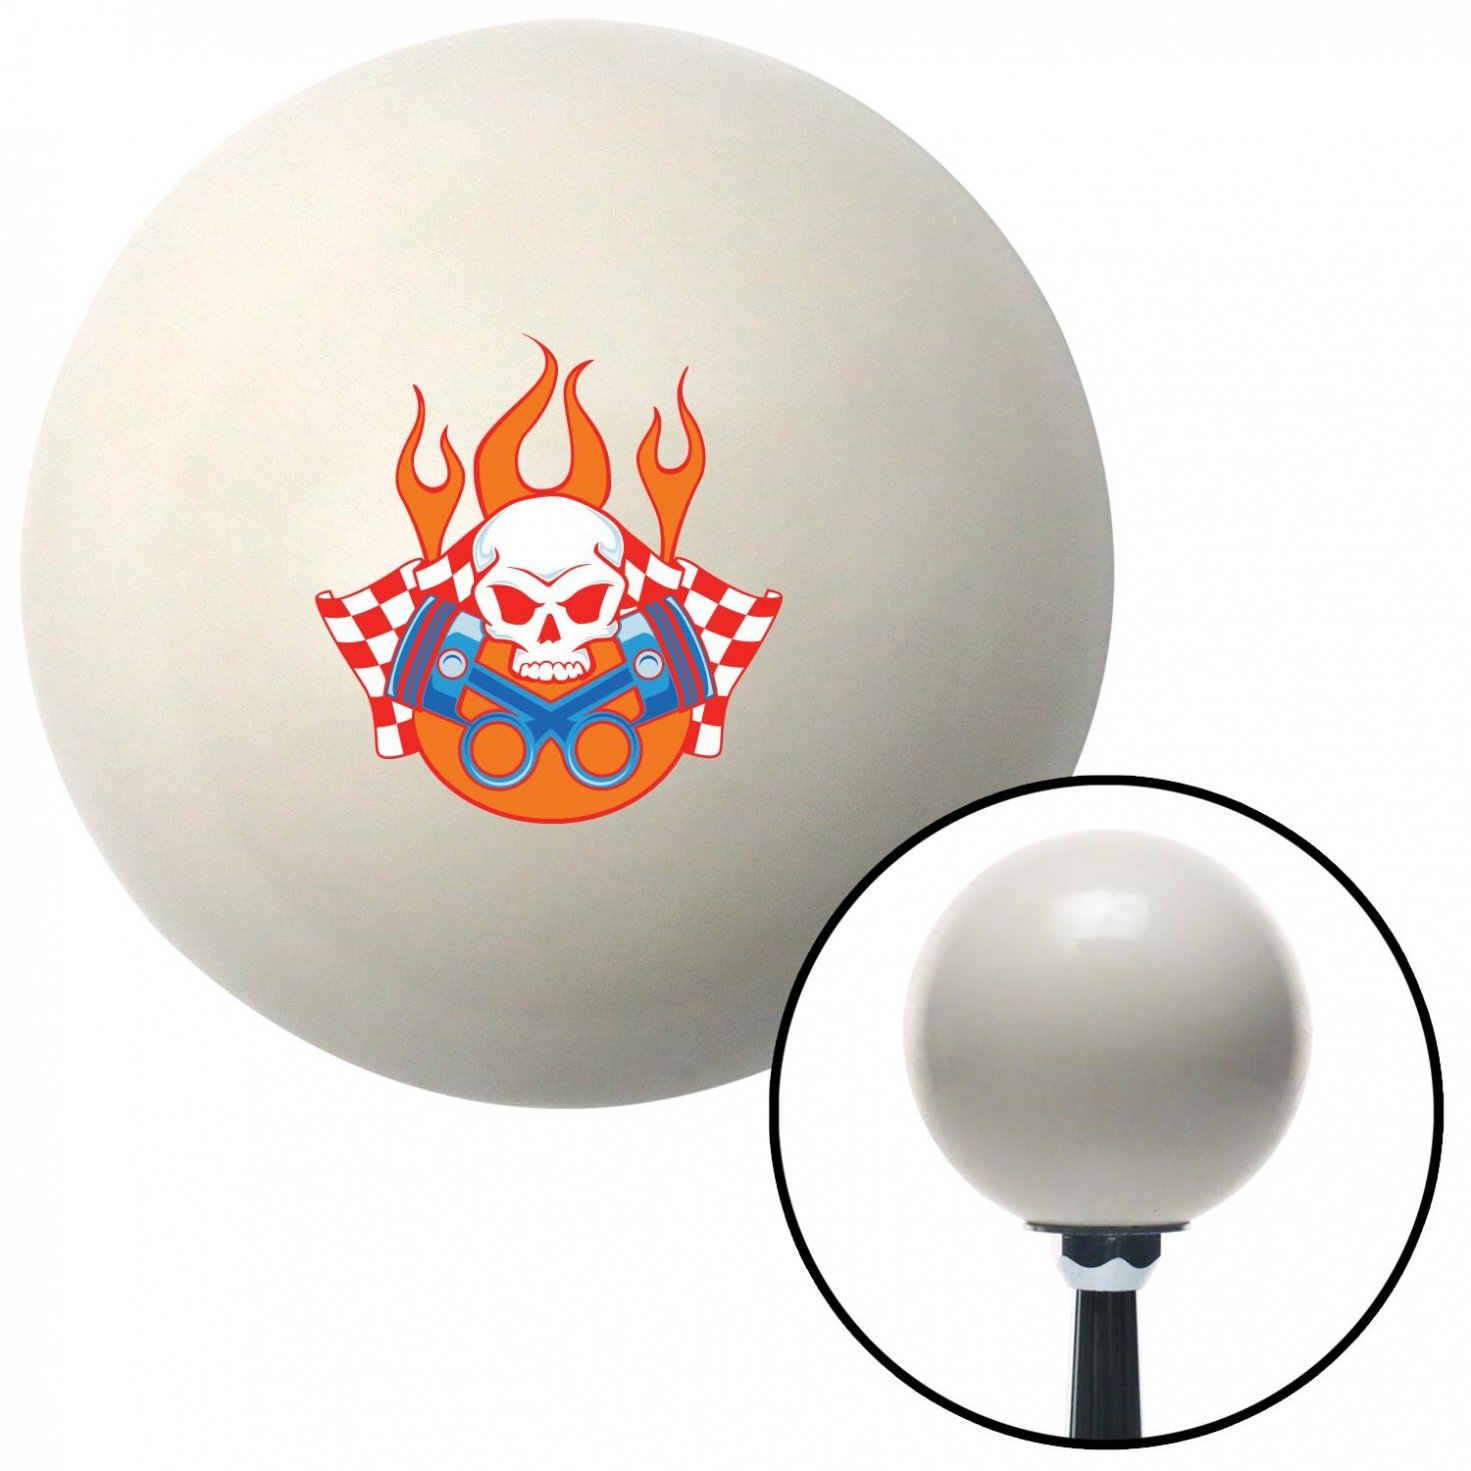 Skull and Pistons 3 American Shifter 42392 Ivory Shift Knob with 16mm x 1.5 Insert